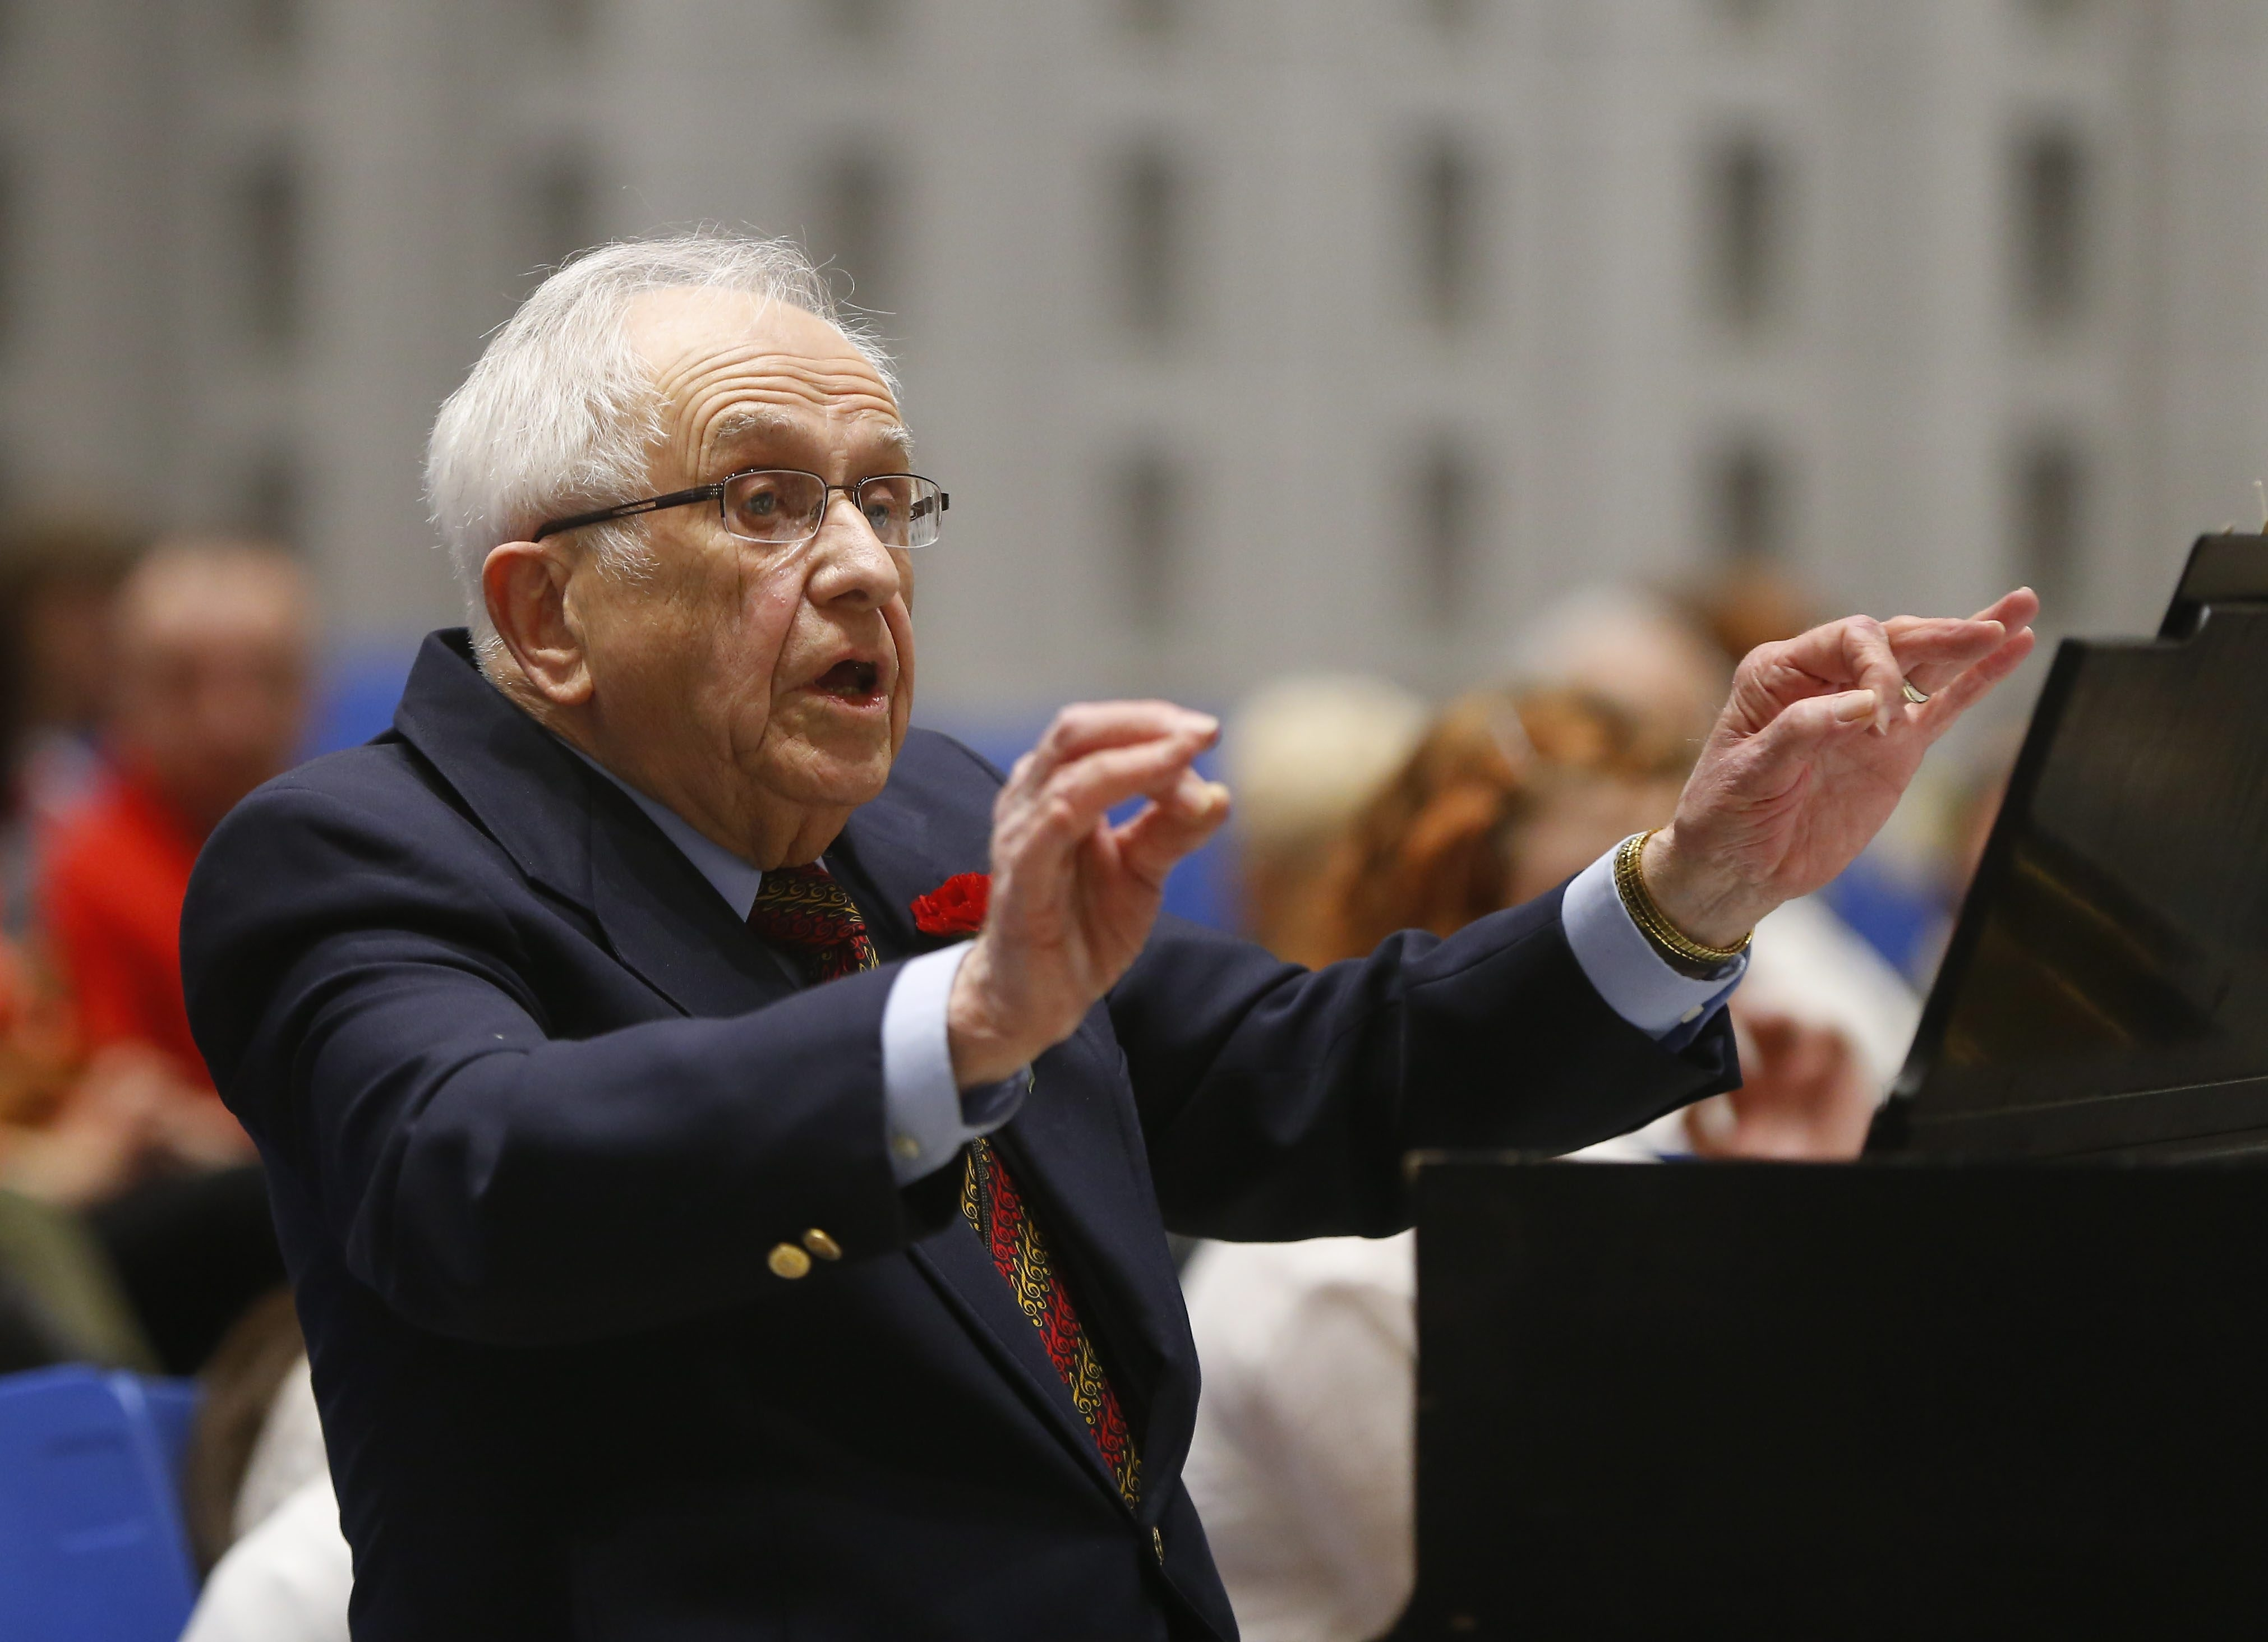 Heim Middle School music teacher Roy W. Clare, 90, conducts the seventh-eighth grade chorus in his final performance of a 57-year teaching career.  (Mark Mulville/Buffalo News)